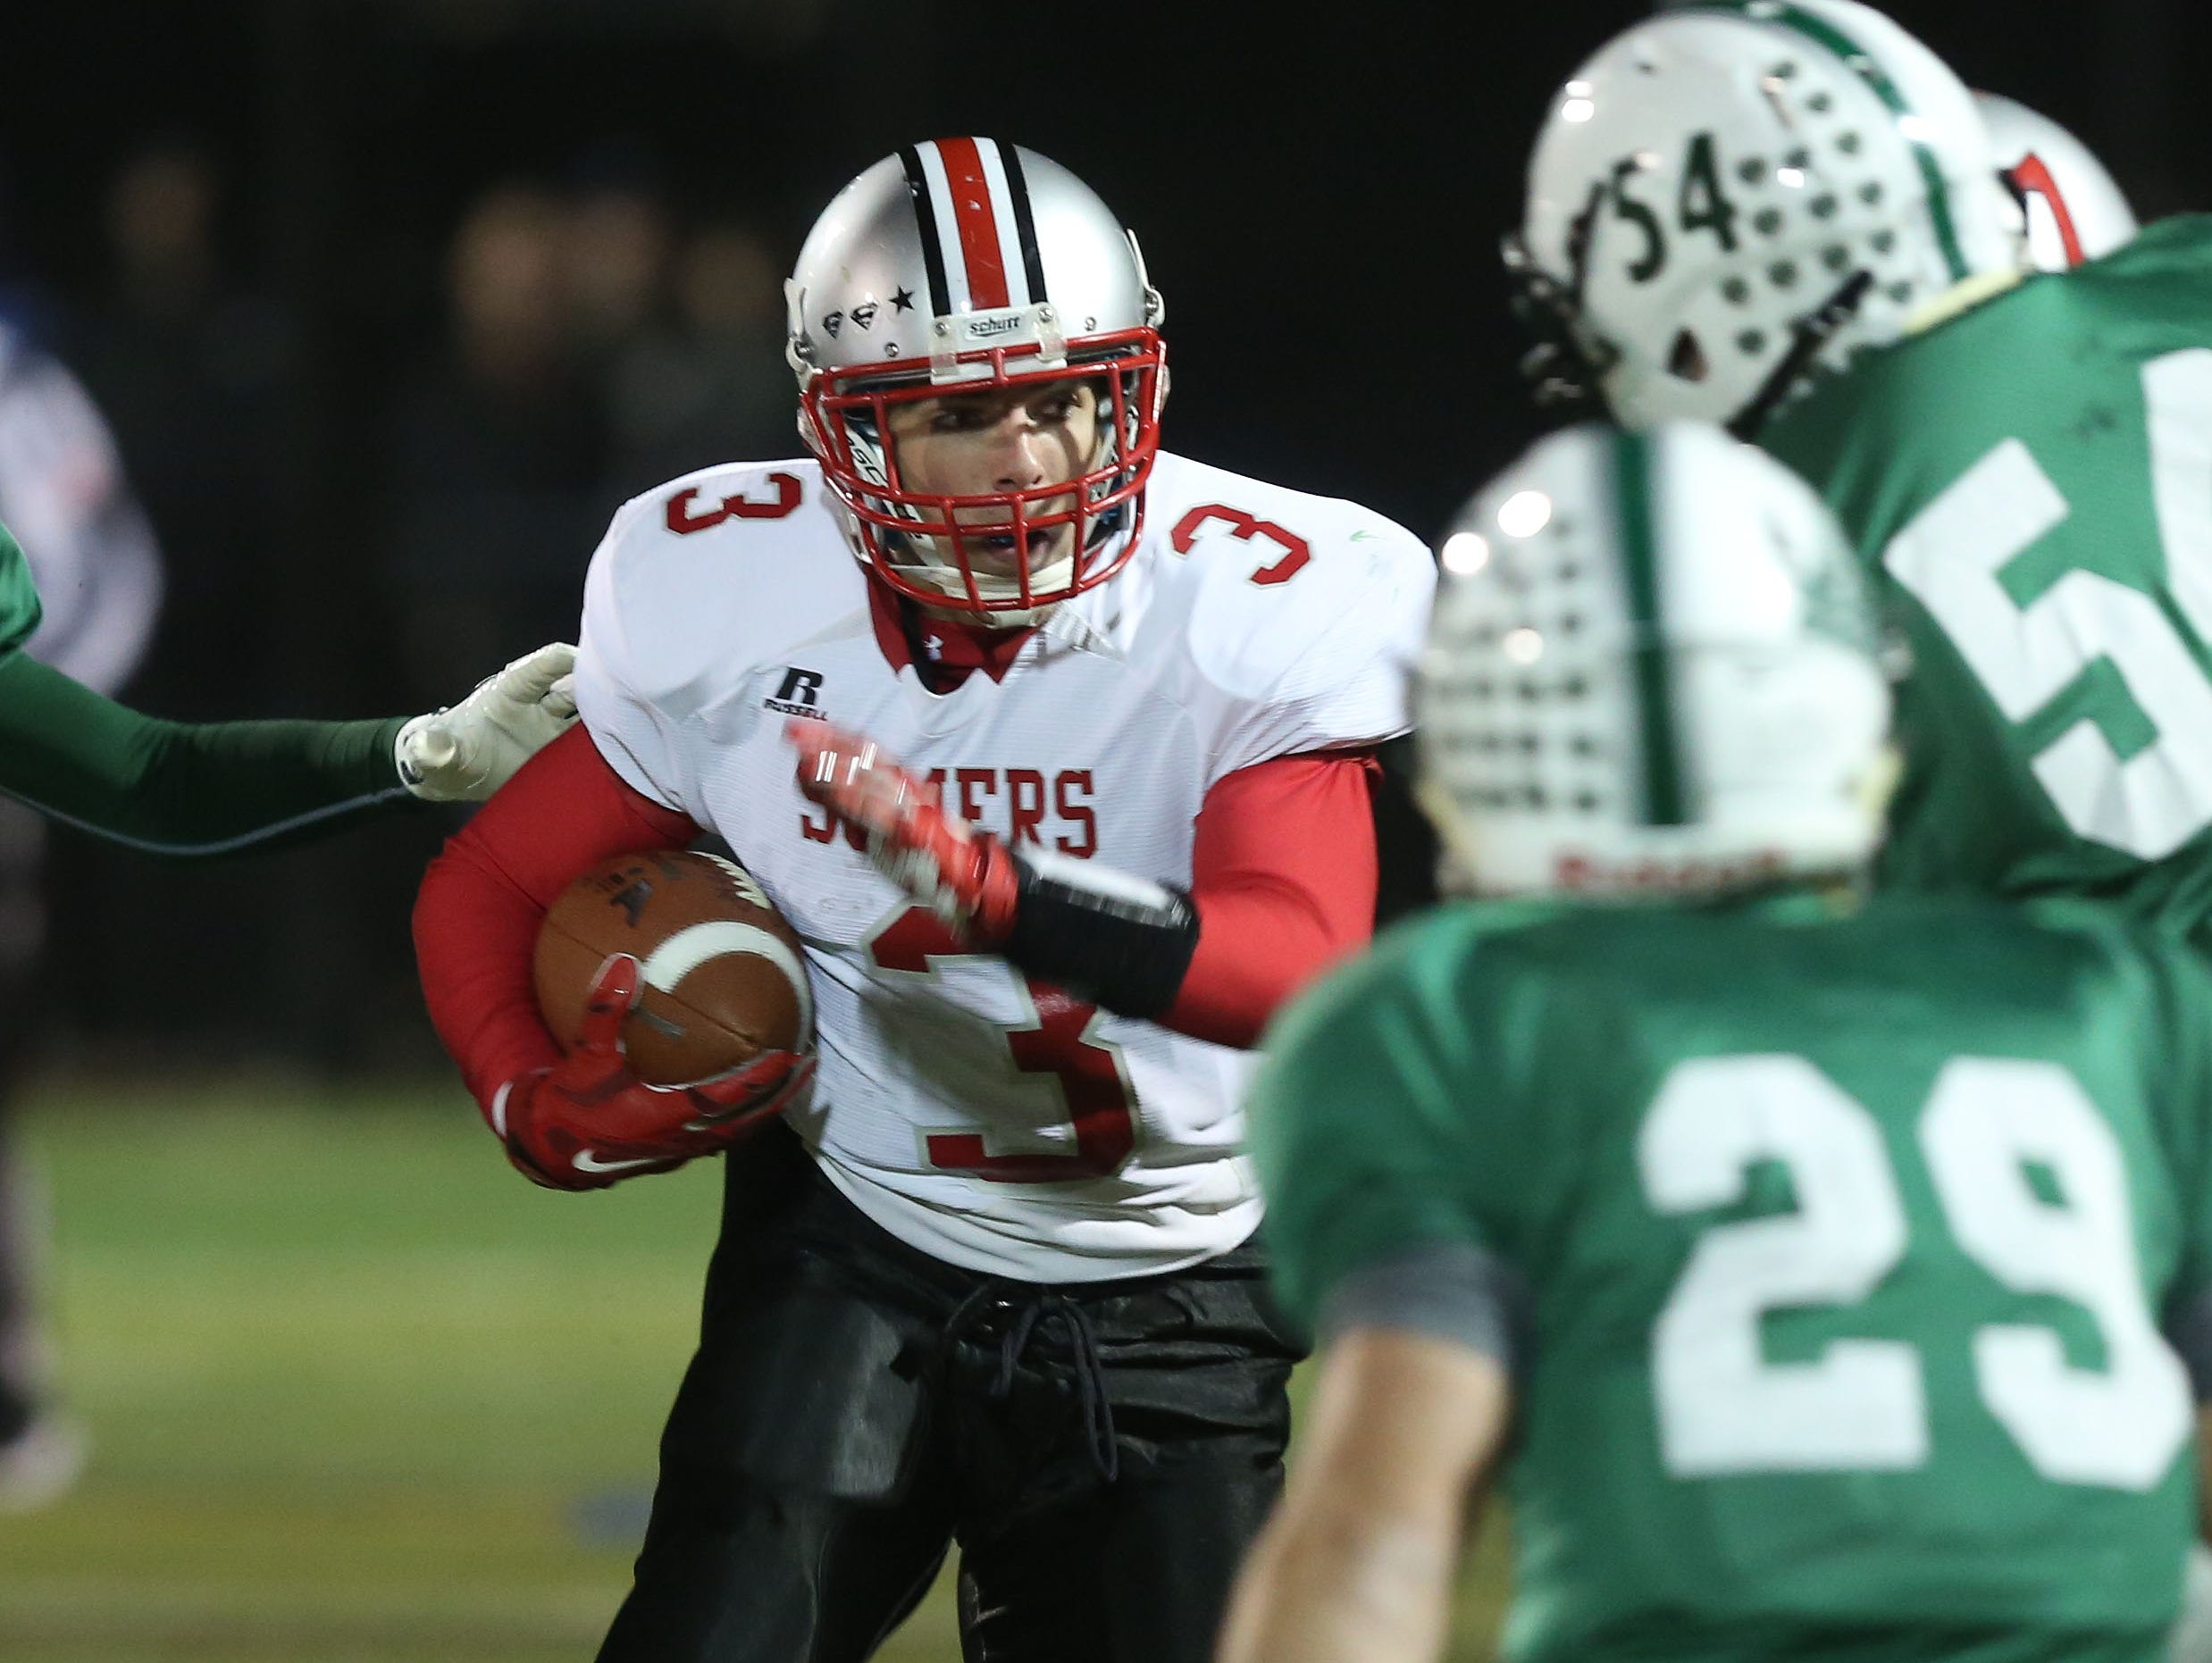 Somers' Matthew Pires (3) looks for some running in the Brewster defense during the Section 1 Class A semifinals at Brewster High School Oct. 28, 2016.